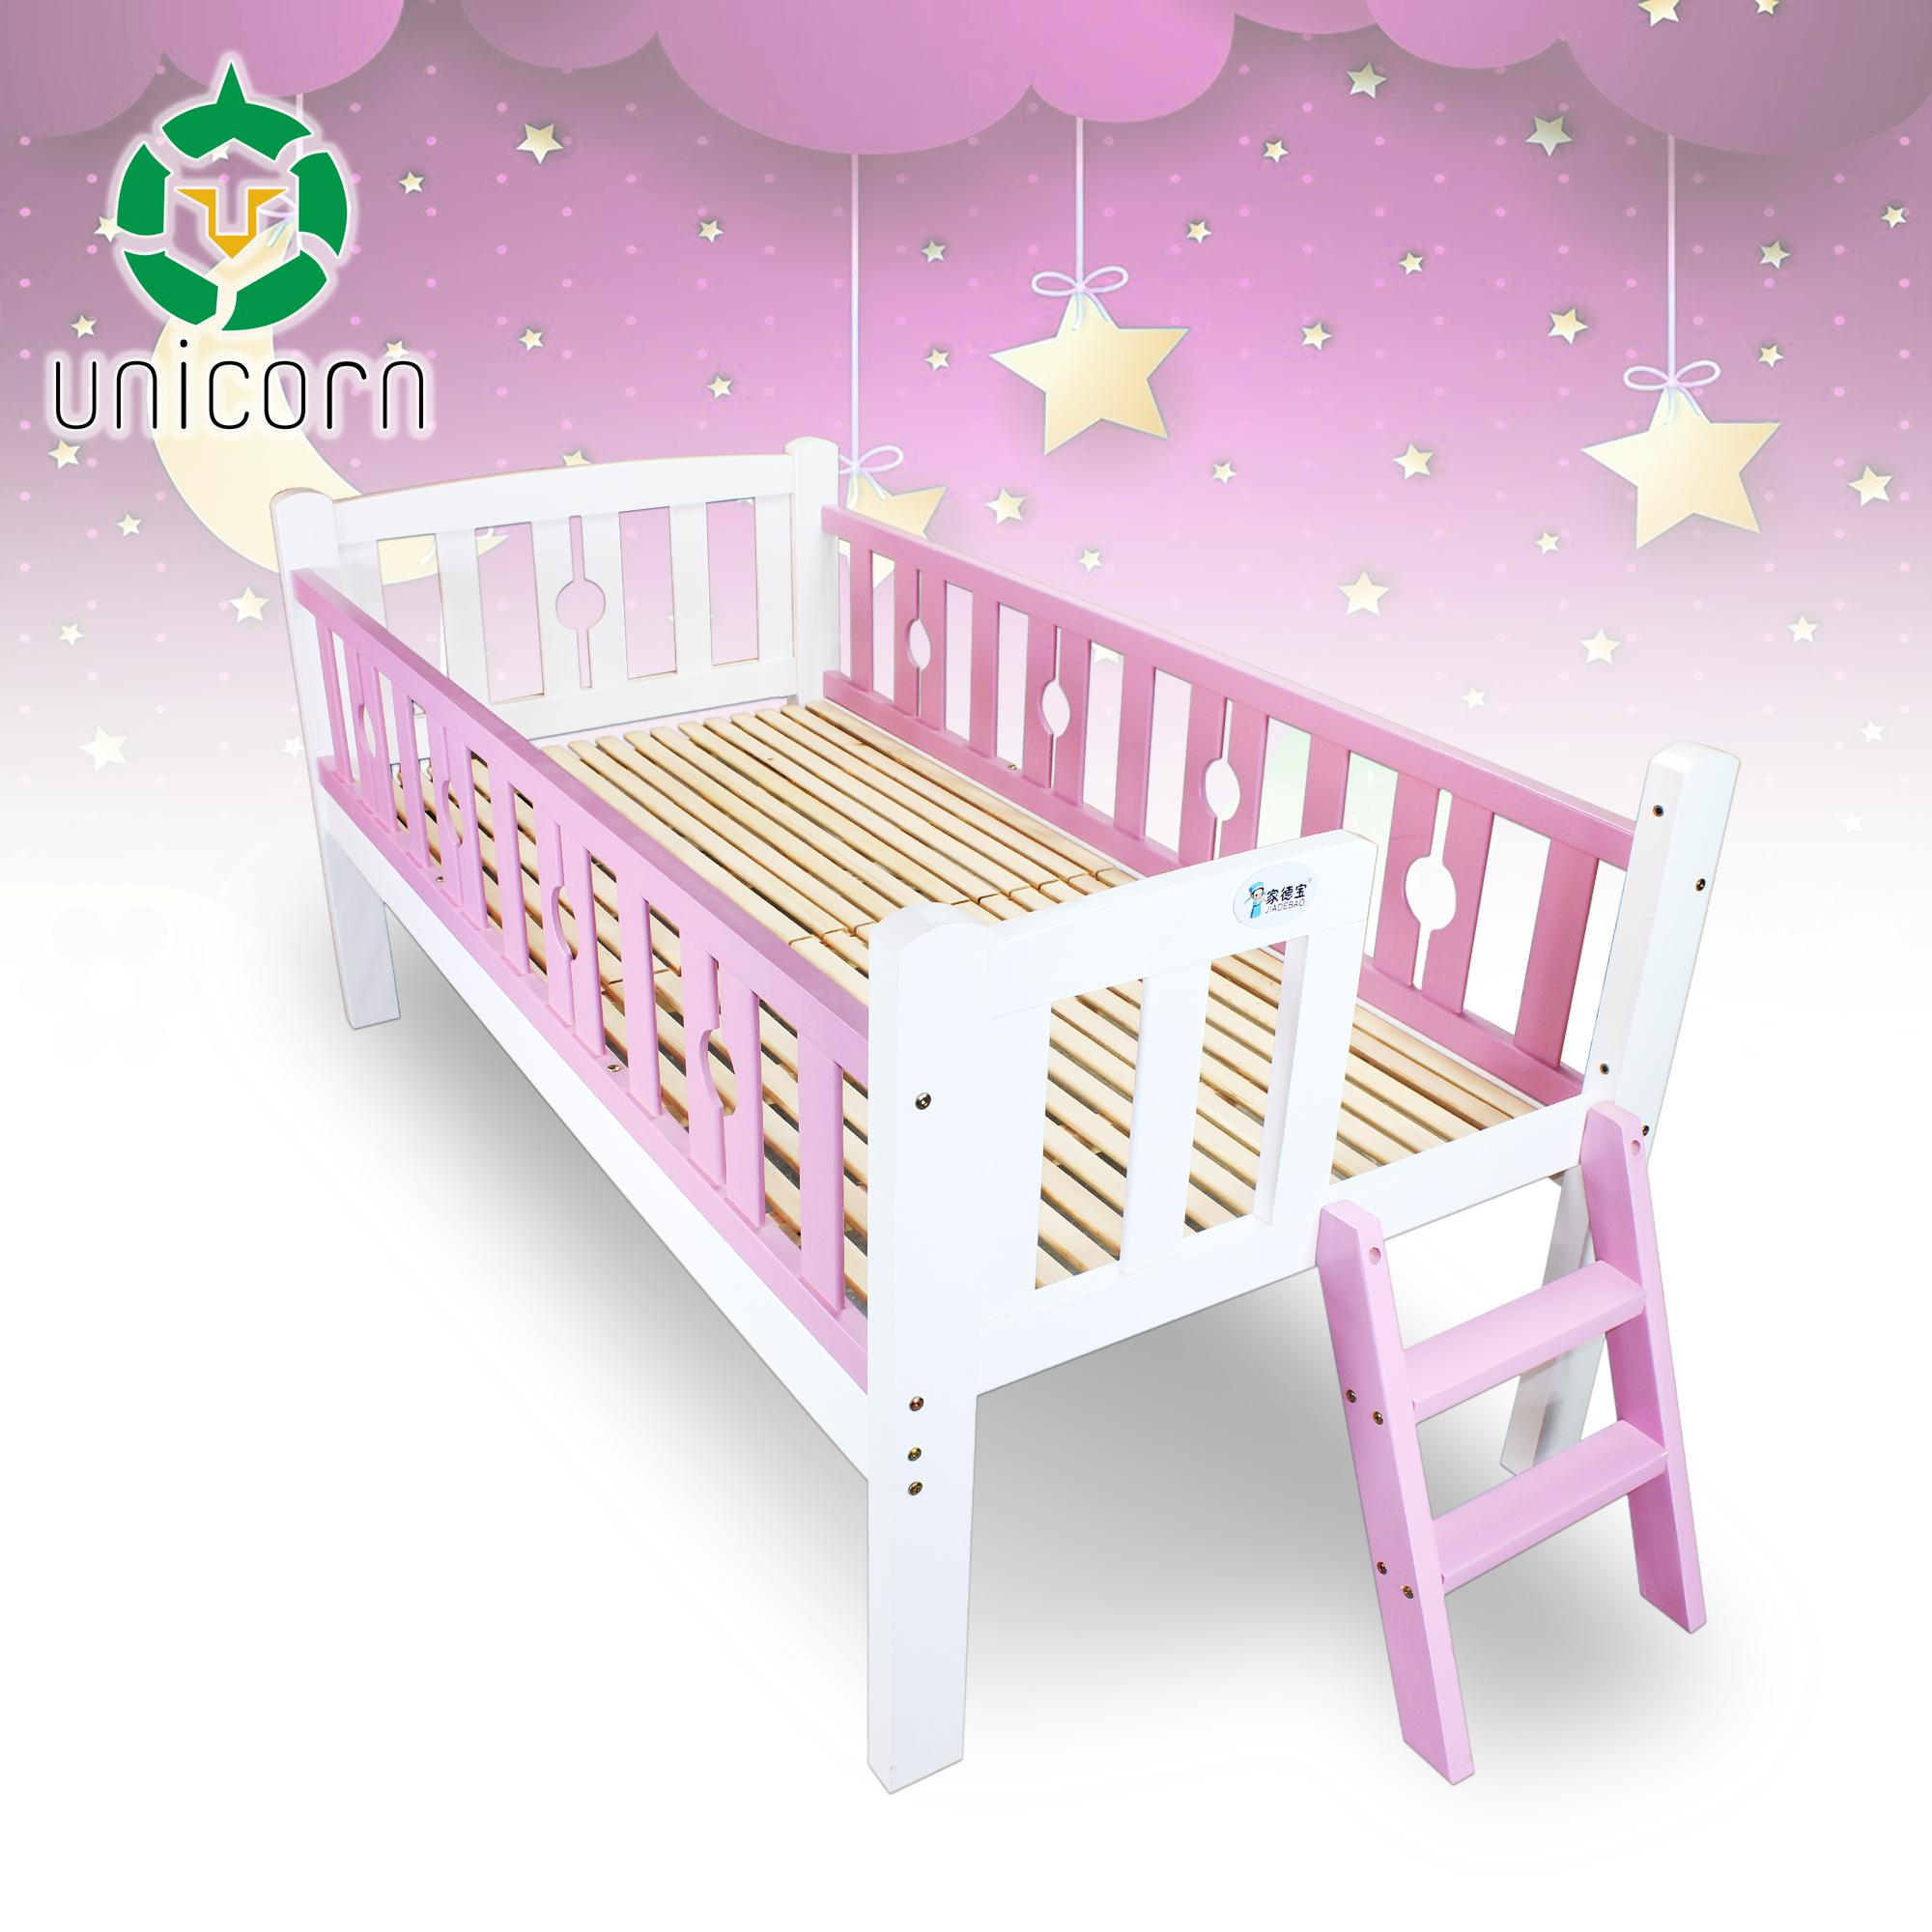 Unicorn Tc-516 2-In-1 Children Toddler Wooden Bed Crib By Unicorn Selected.